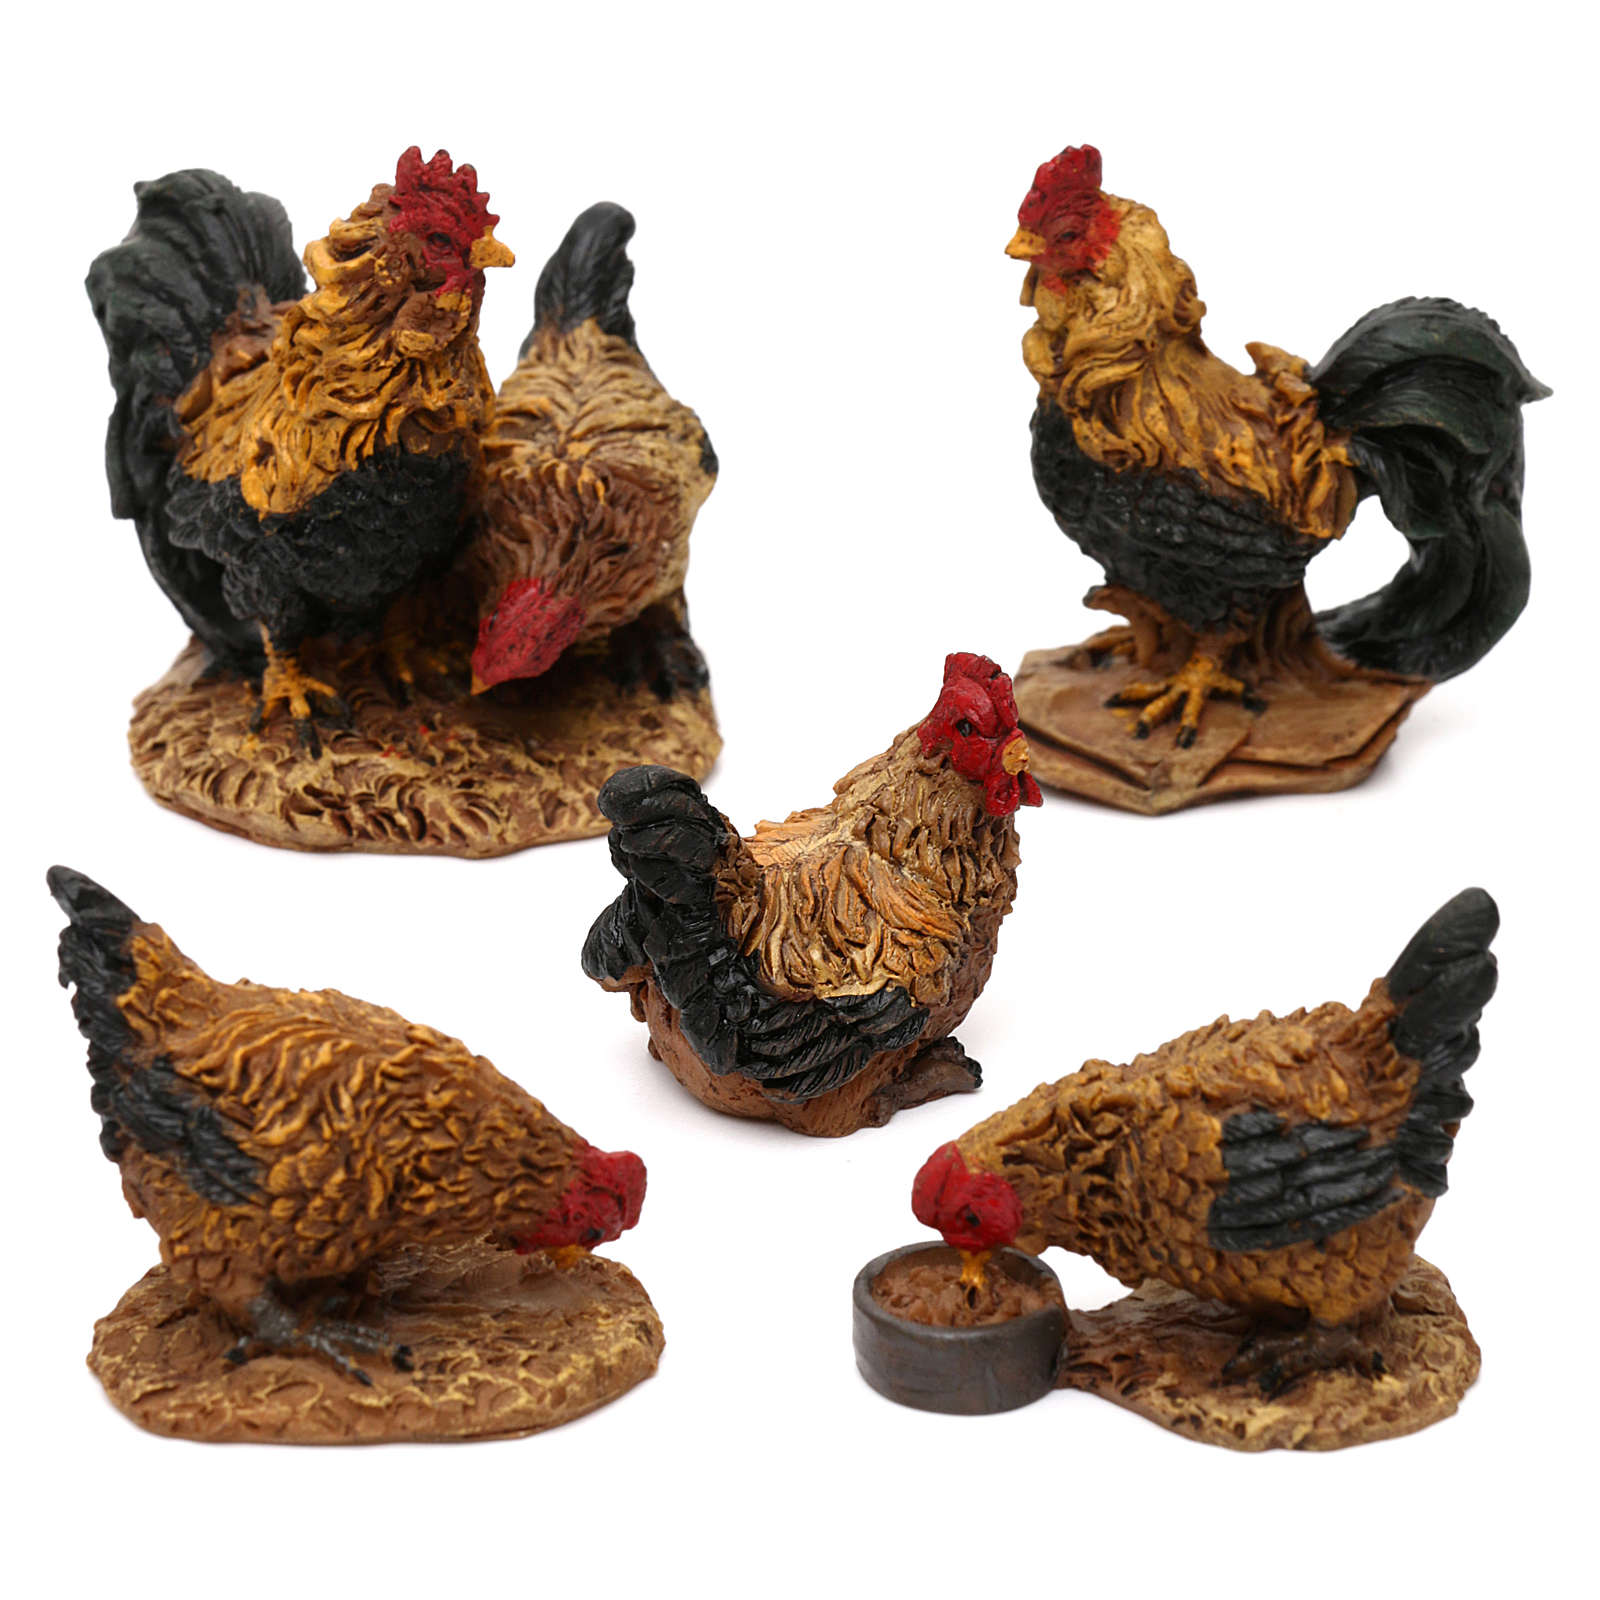 STOCK Chickens for 13-18 cm Nativity scene 5 pcs 3